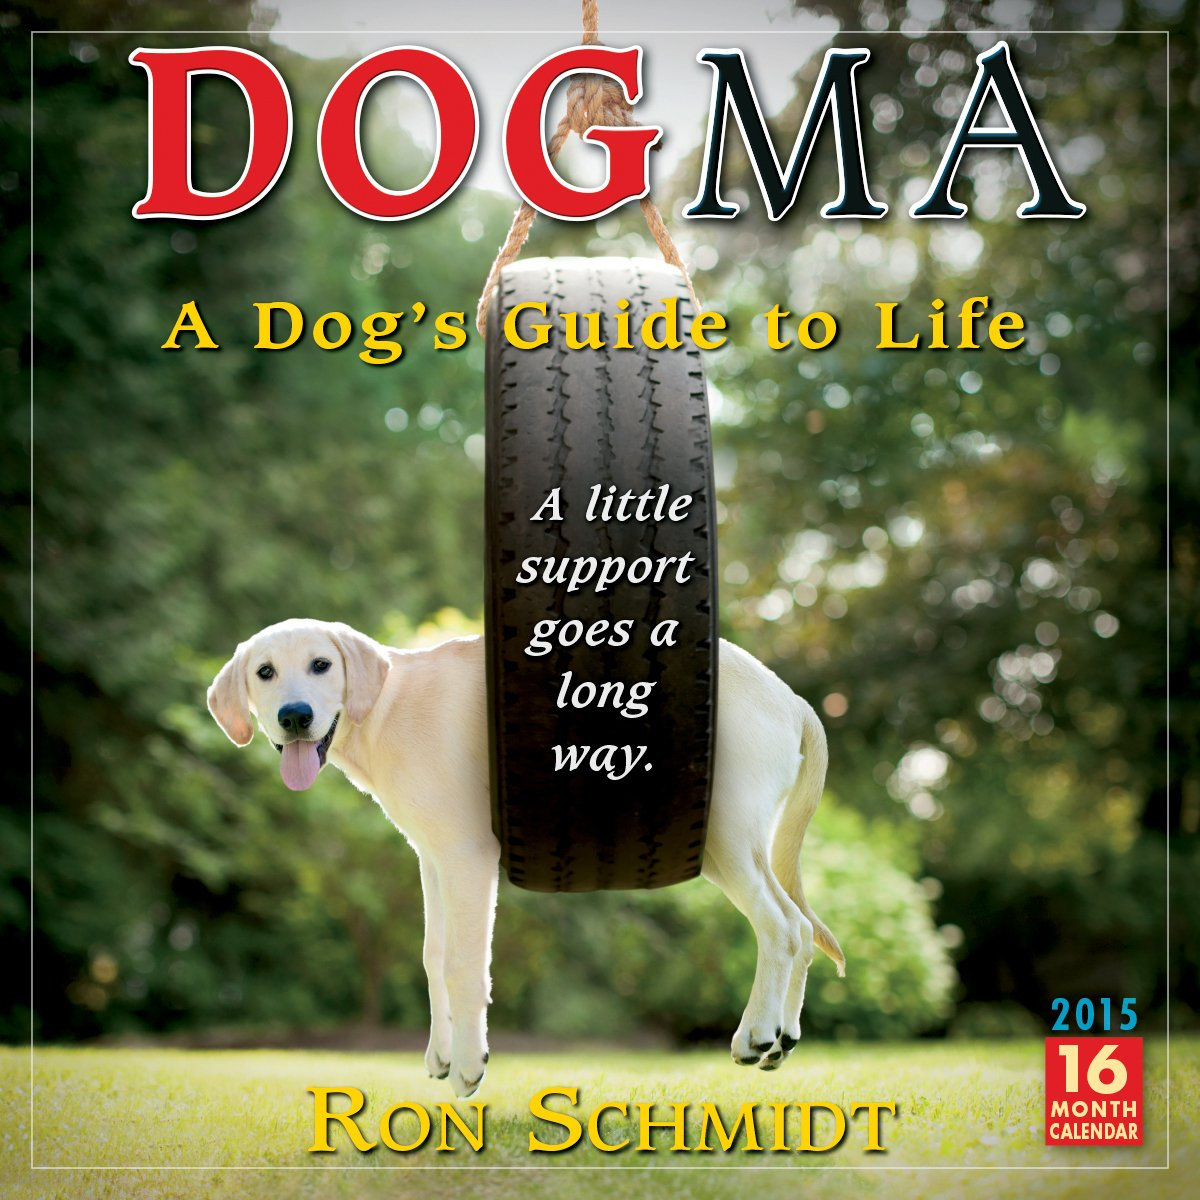 Dogma: A Dog's Guide to Life 2015 Wall Calendar